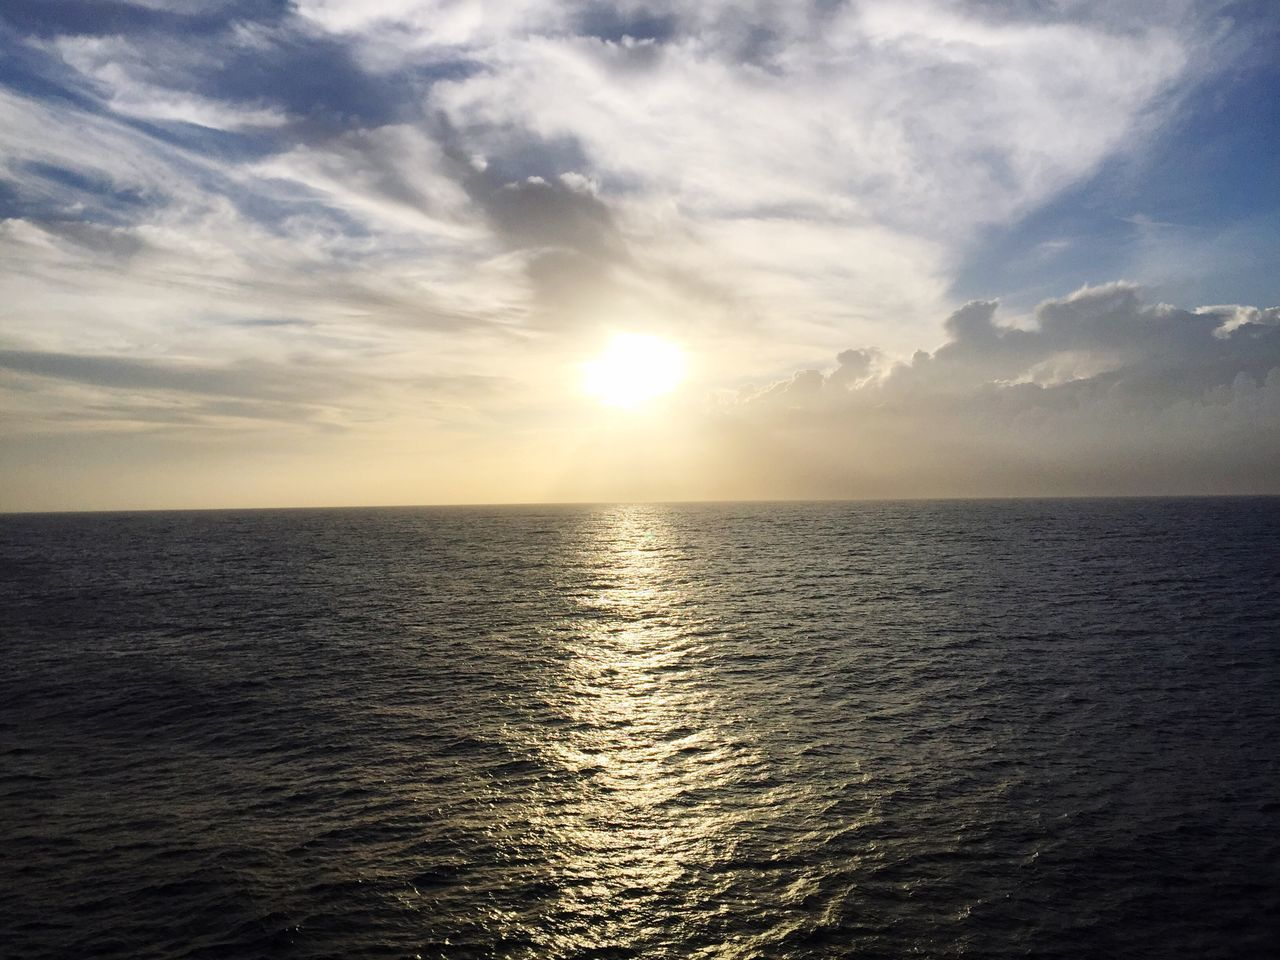 sea, sunset, sun, water, scenics, horizon over water, tranquility, sky, nature, beauty in nature, tranquil scene, idyllic, reflection, sunlight, no people, outdoors